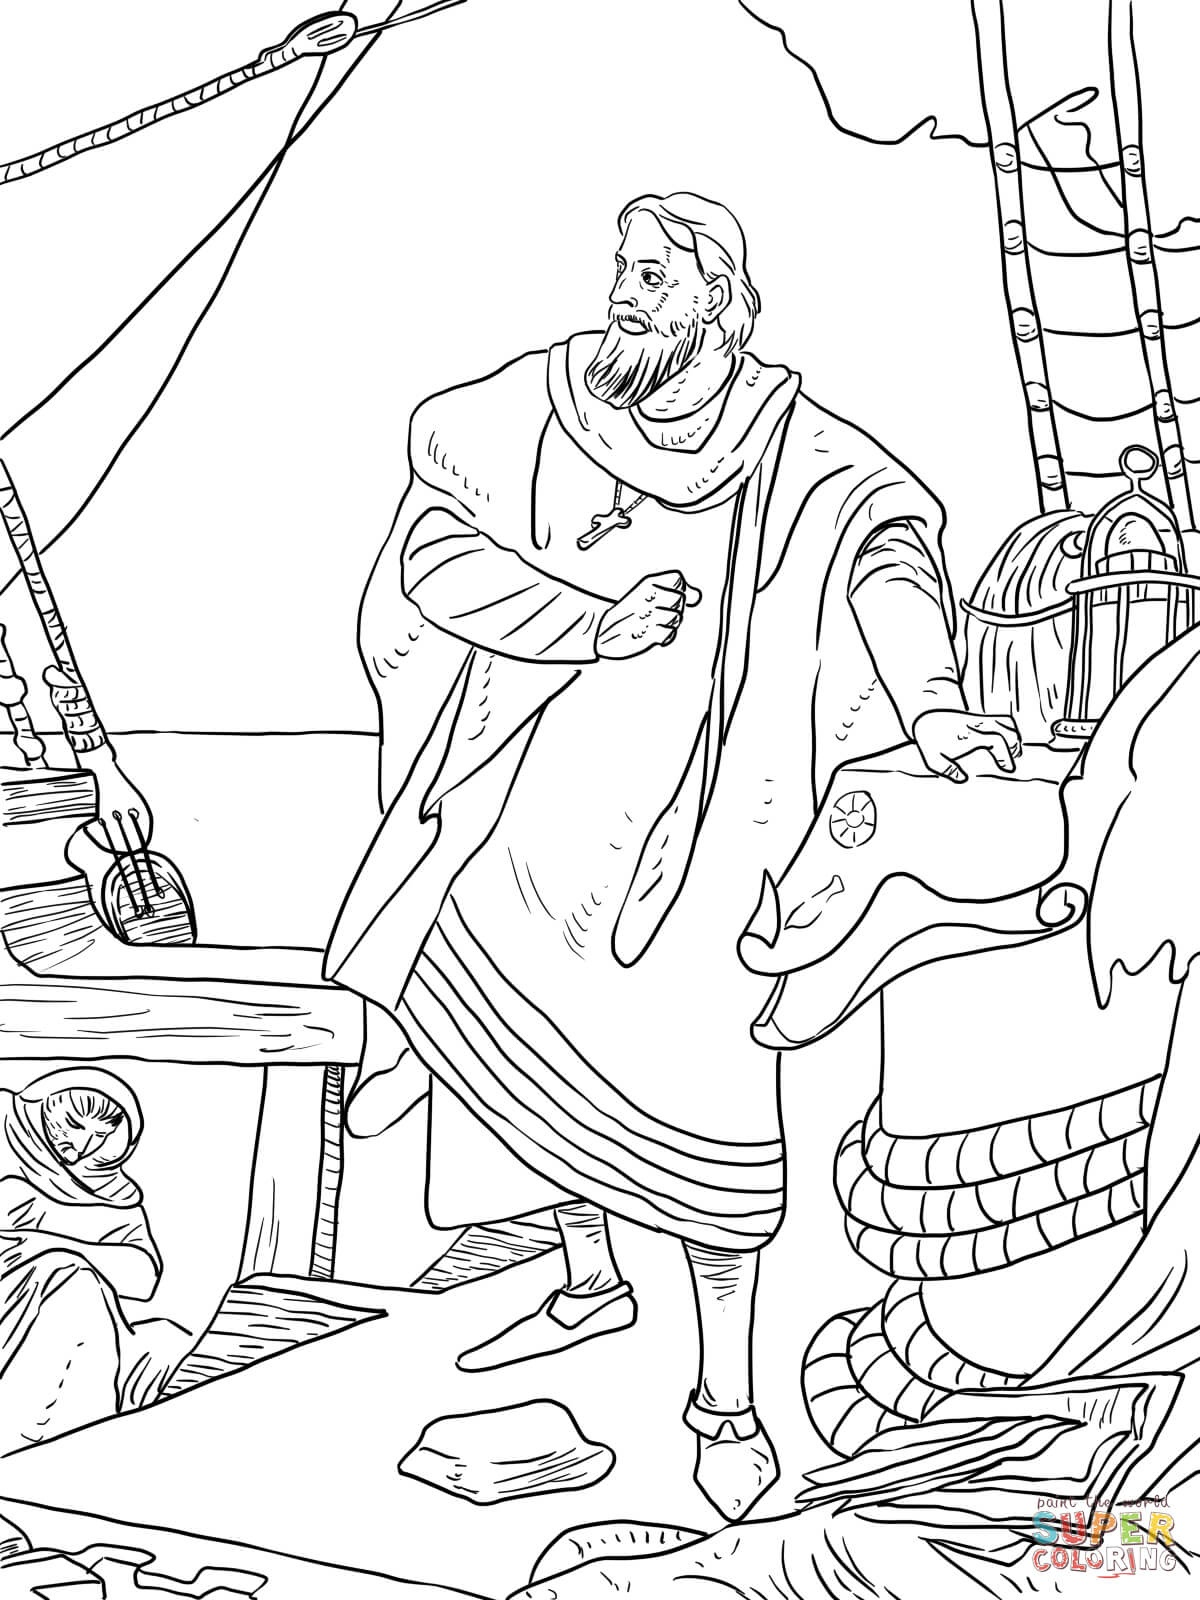 Christopher Columbus On The Santa Maria Coloring Page | Free - Free Printable Christopher Columbus Coloring Pages